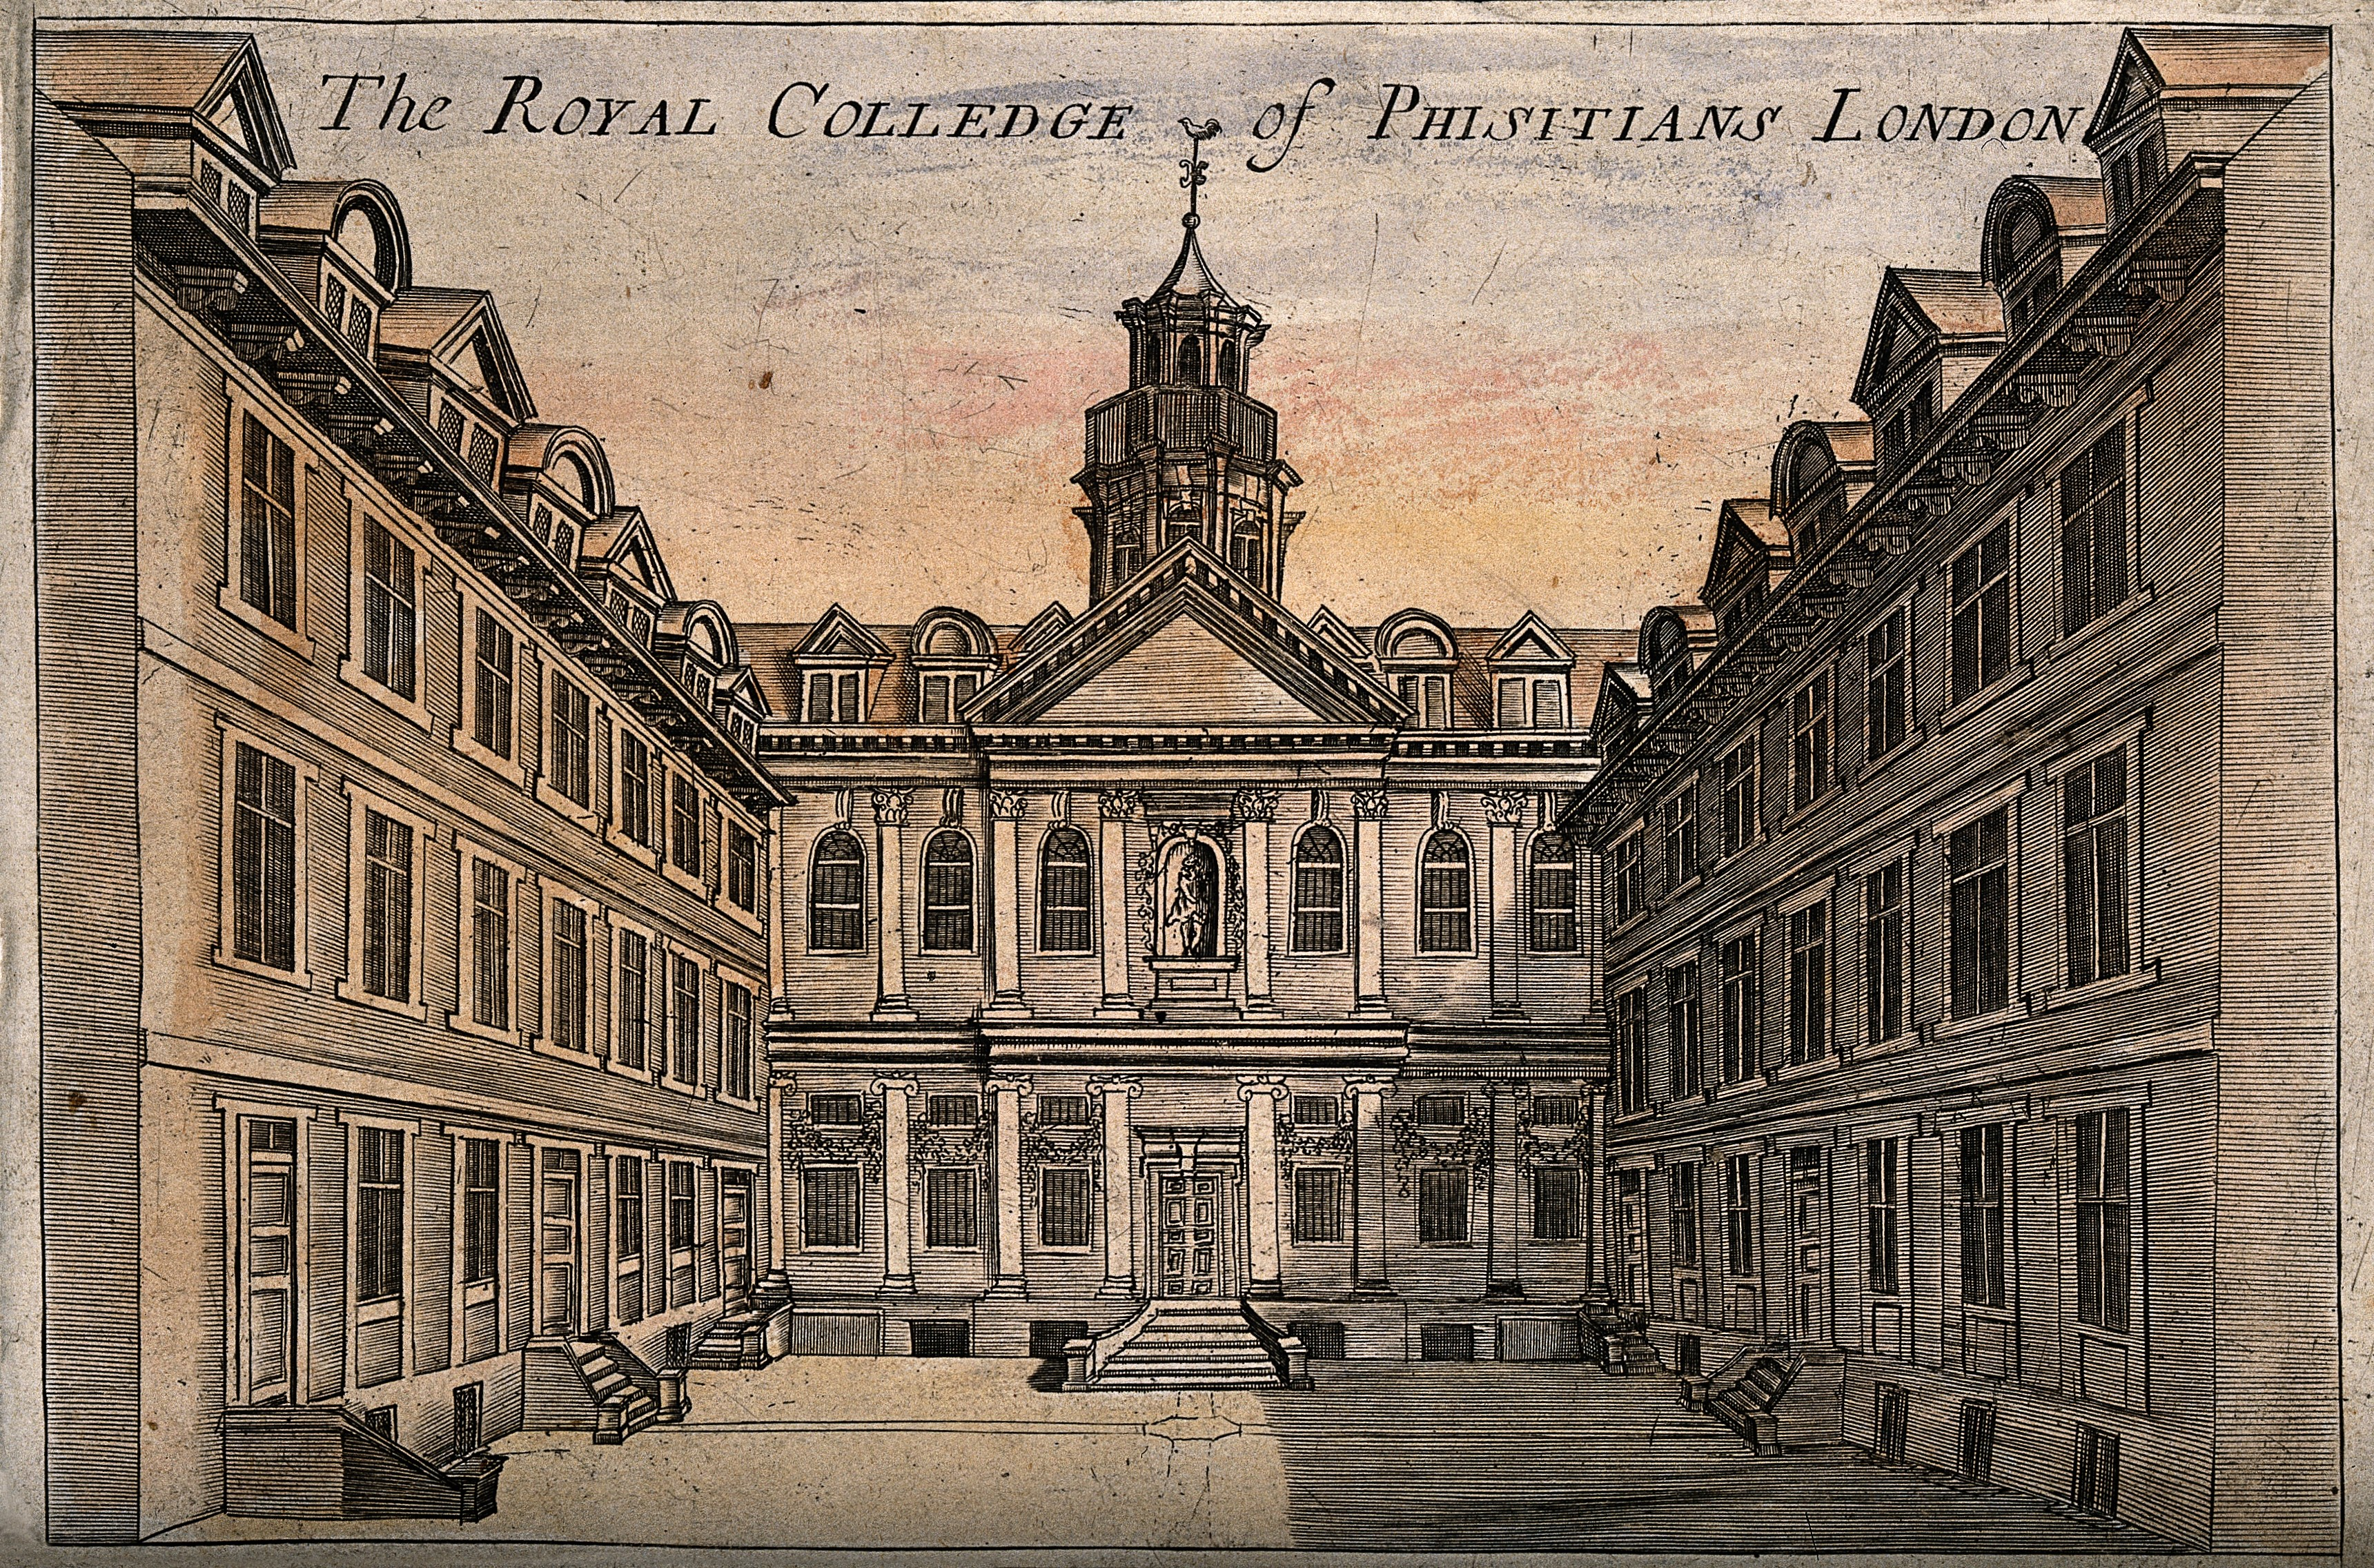 Third home of the Royal College of Physicians c 1800